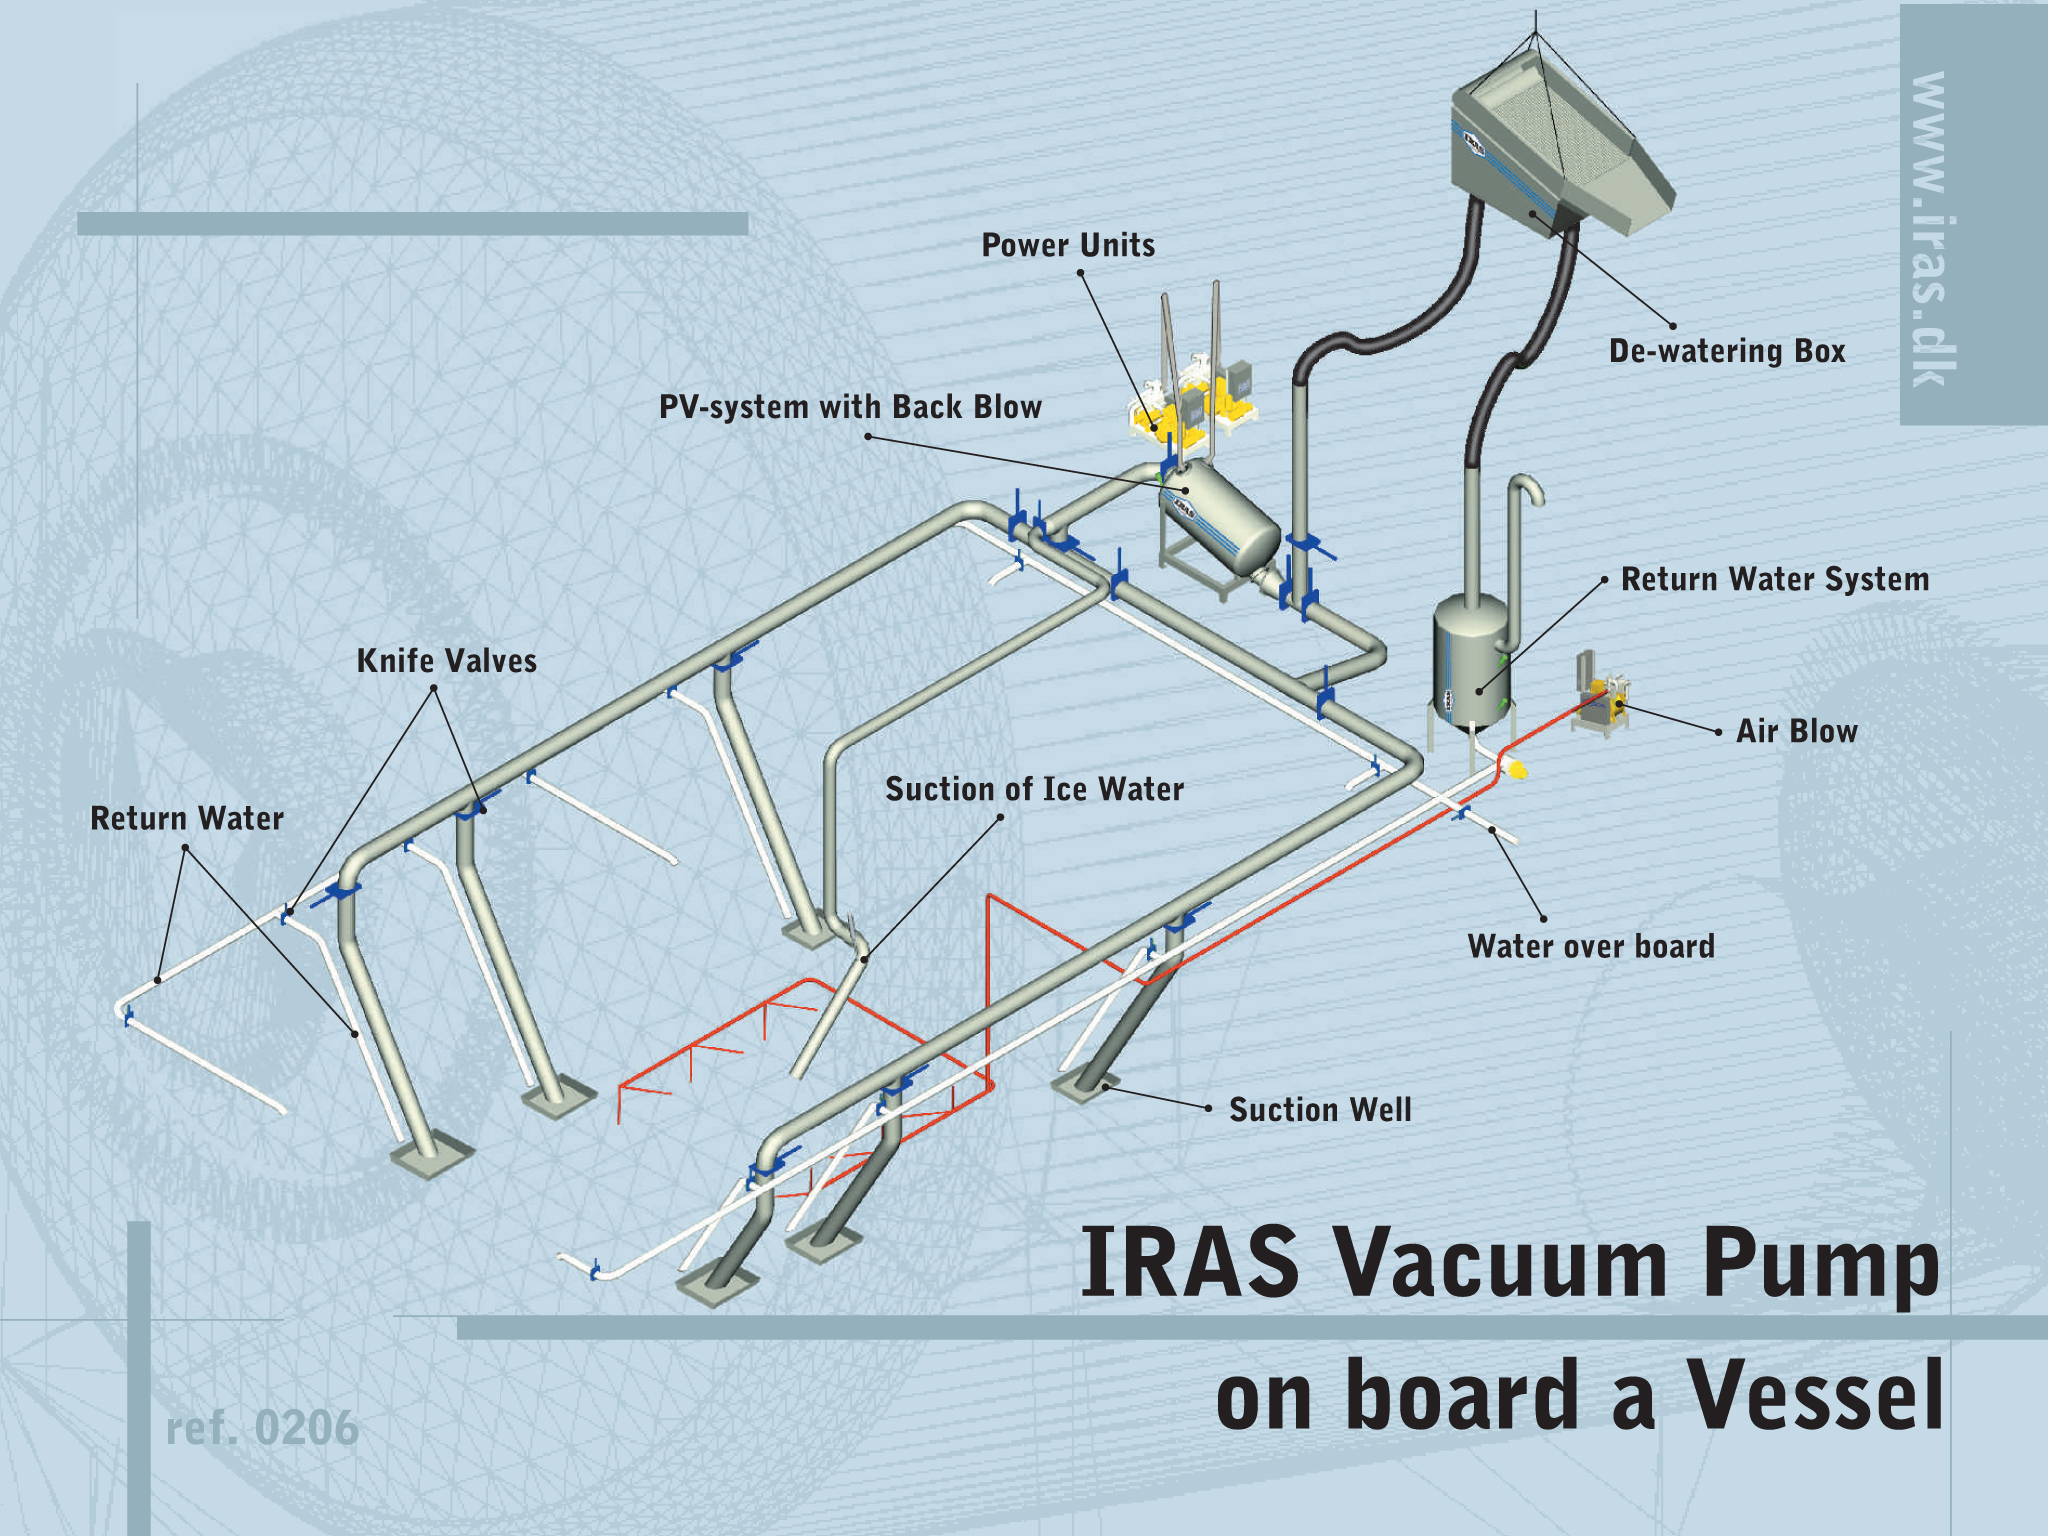 Projects - Distribution systems - Iras